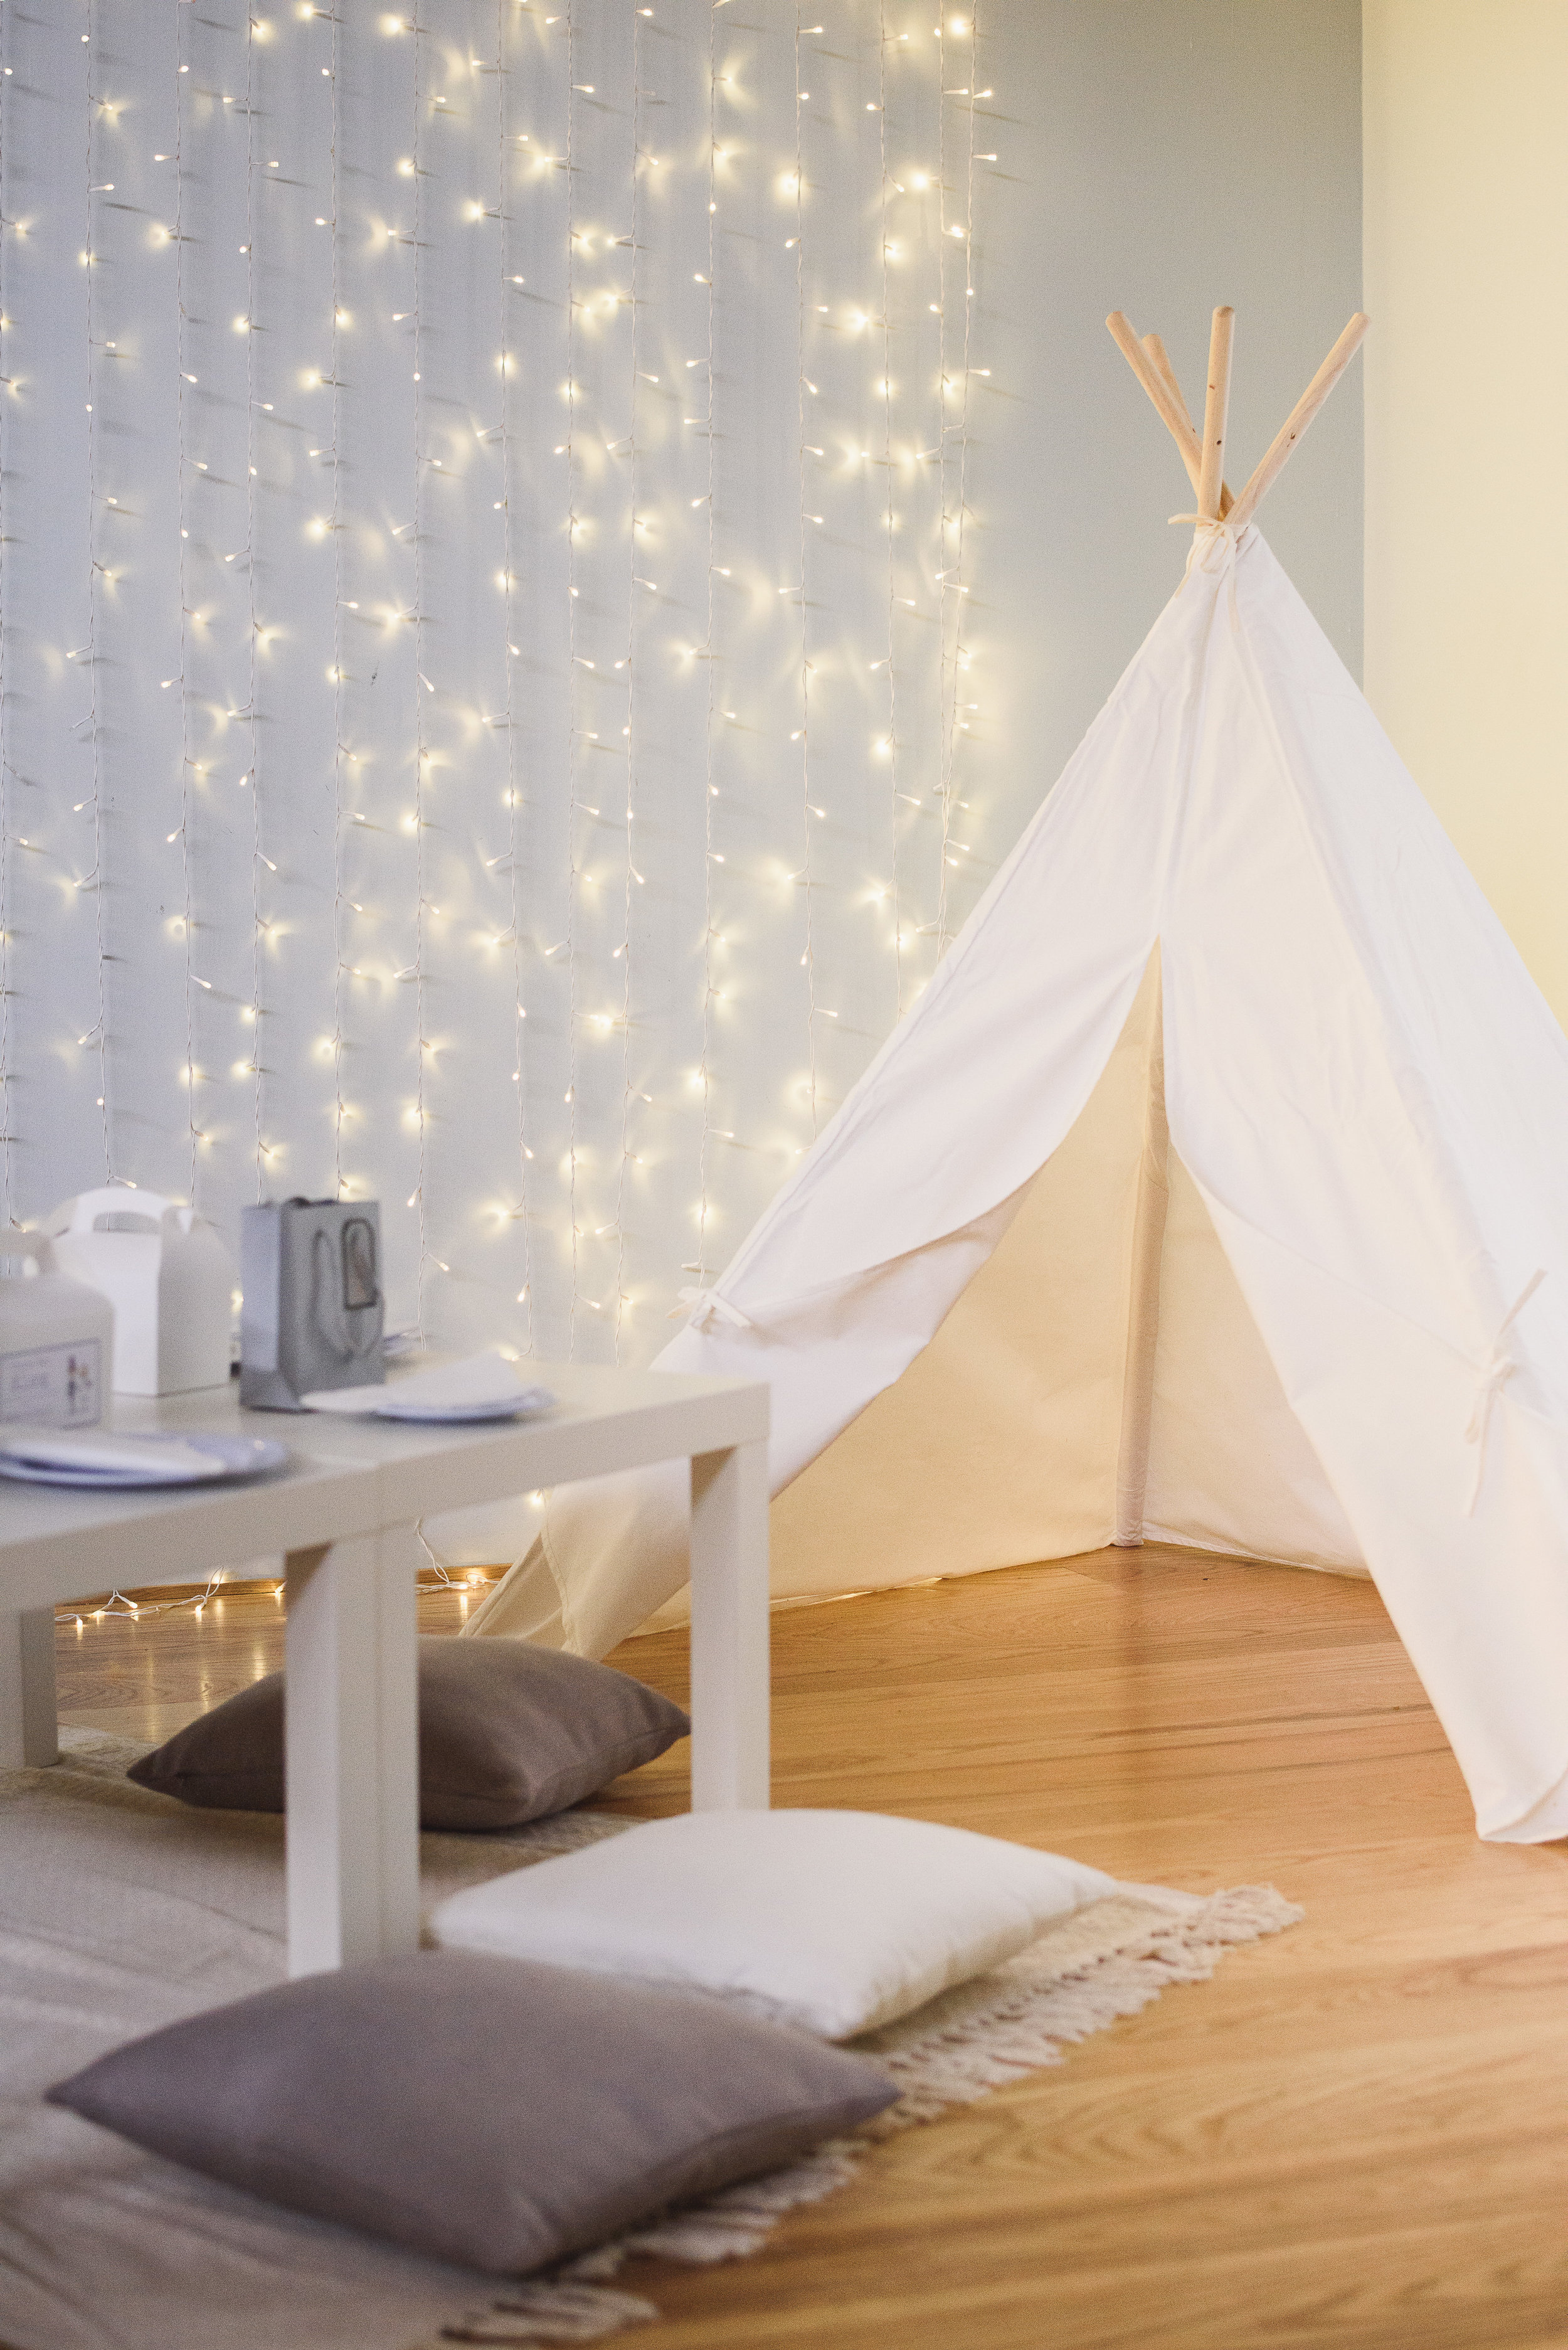 childrens-teepee-wedding-the-planning-lounge